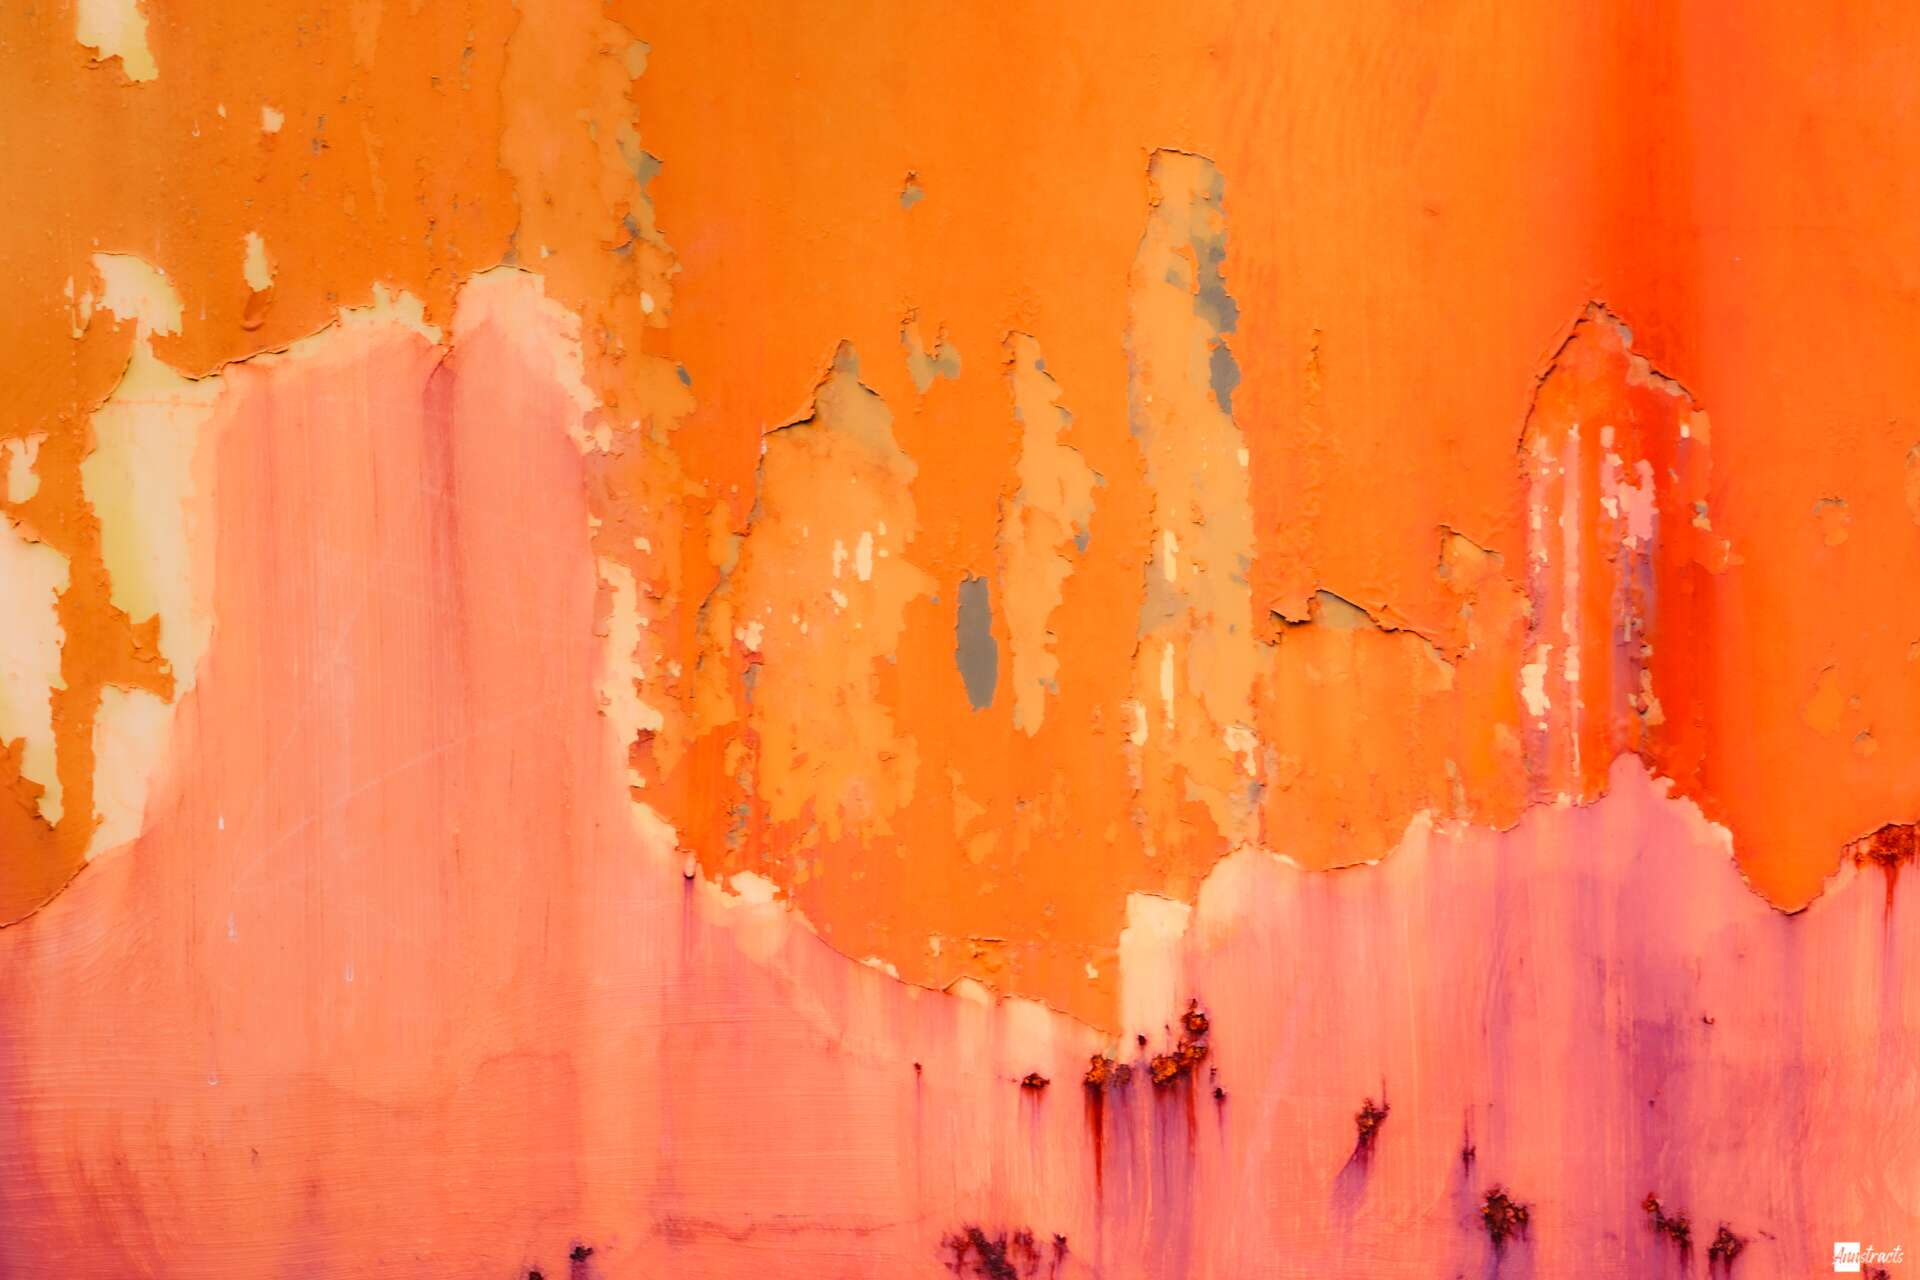 abstract peeling paint image that looks like monument valley at sunset